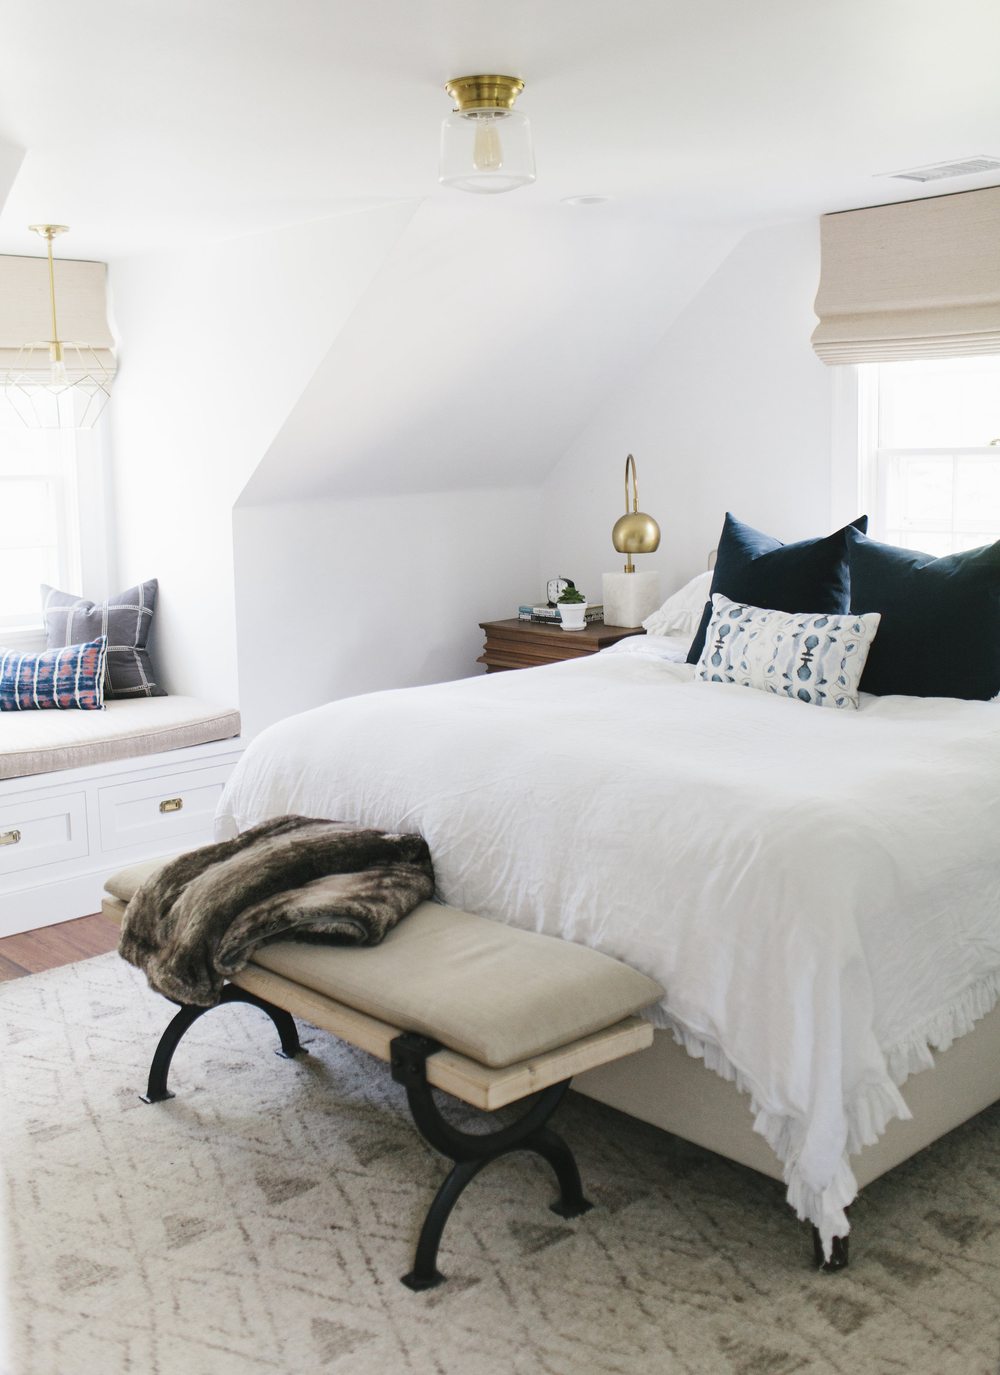 attic bedroom and bathroom ideas - Lynwood Remodel Master Bedroom and Bath — STUDIO MCGEE